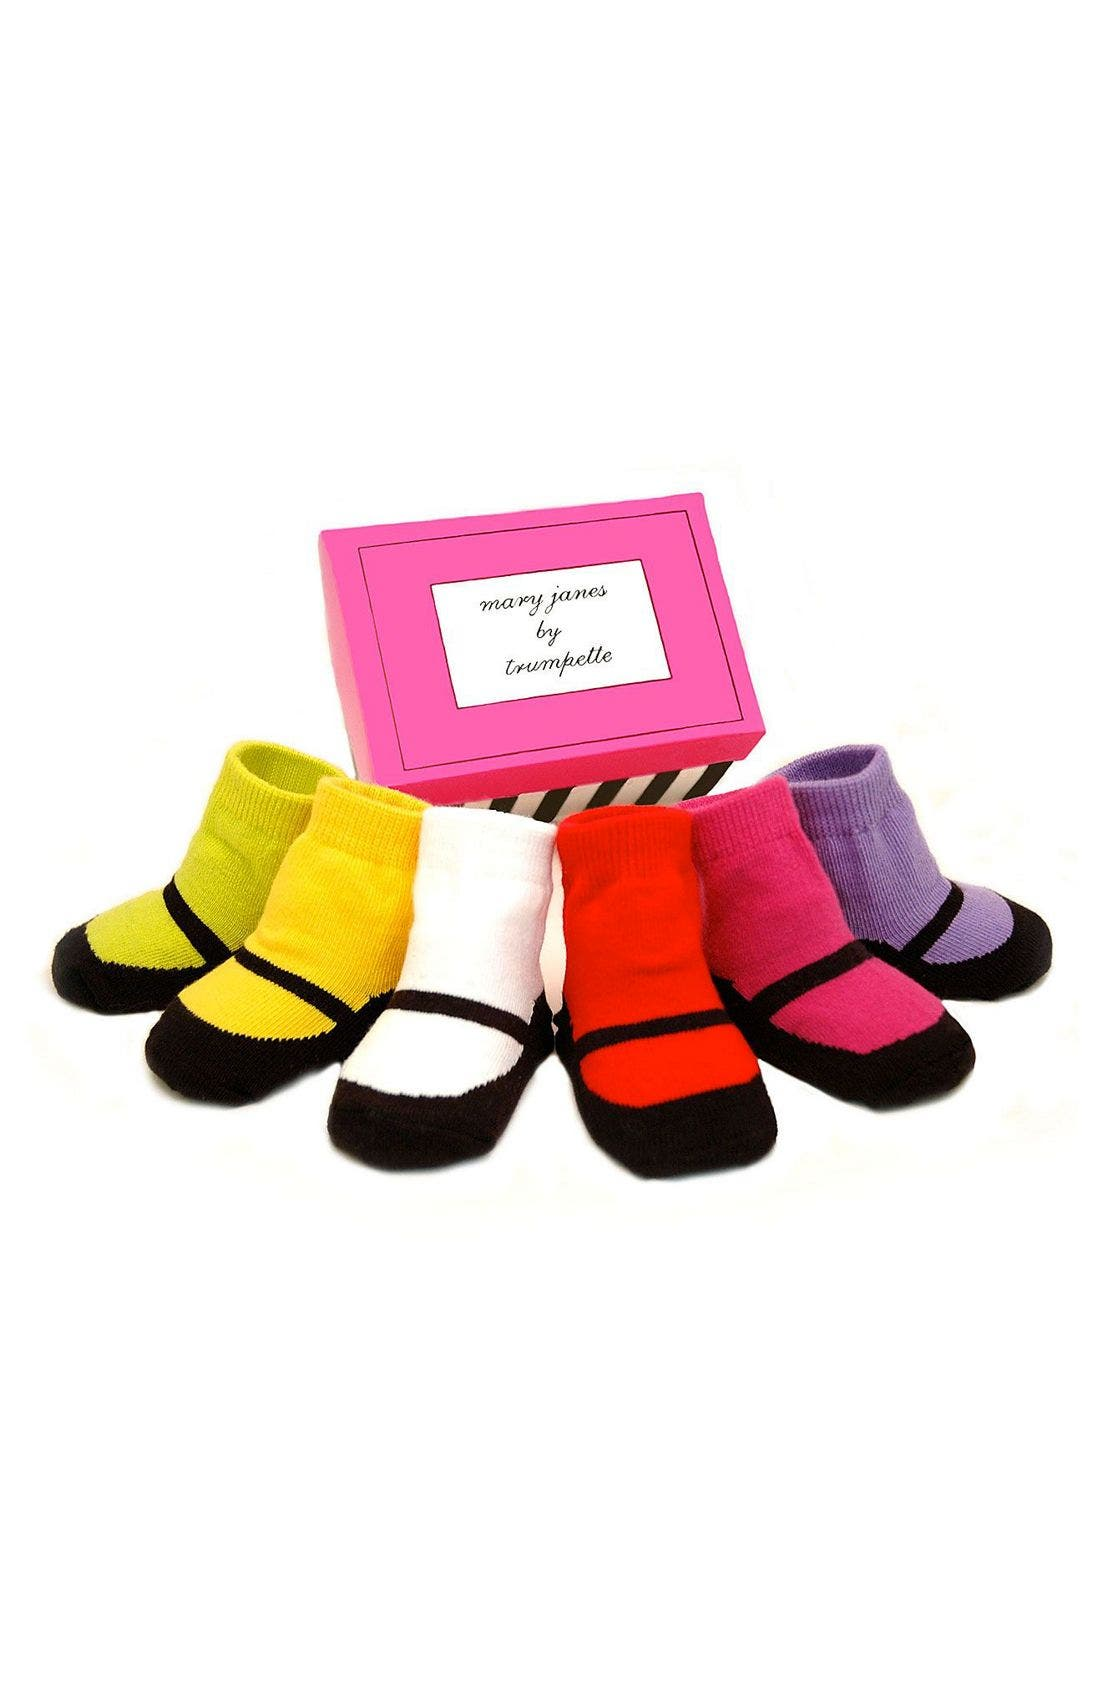 Main Image - Trumpette 'Mary Janes' Socks Gift Set (Baby Girls)